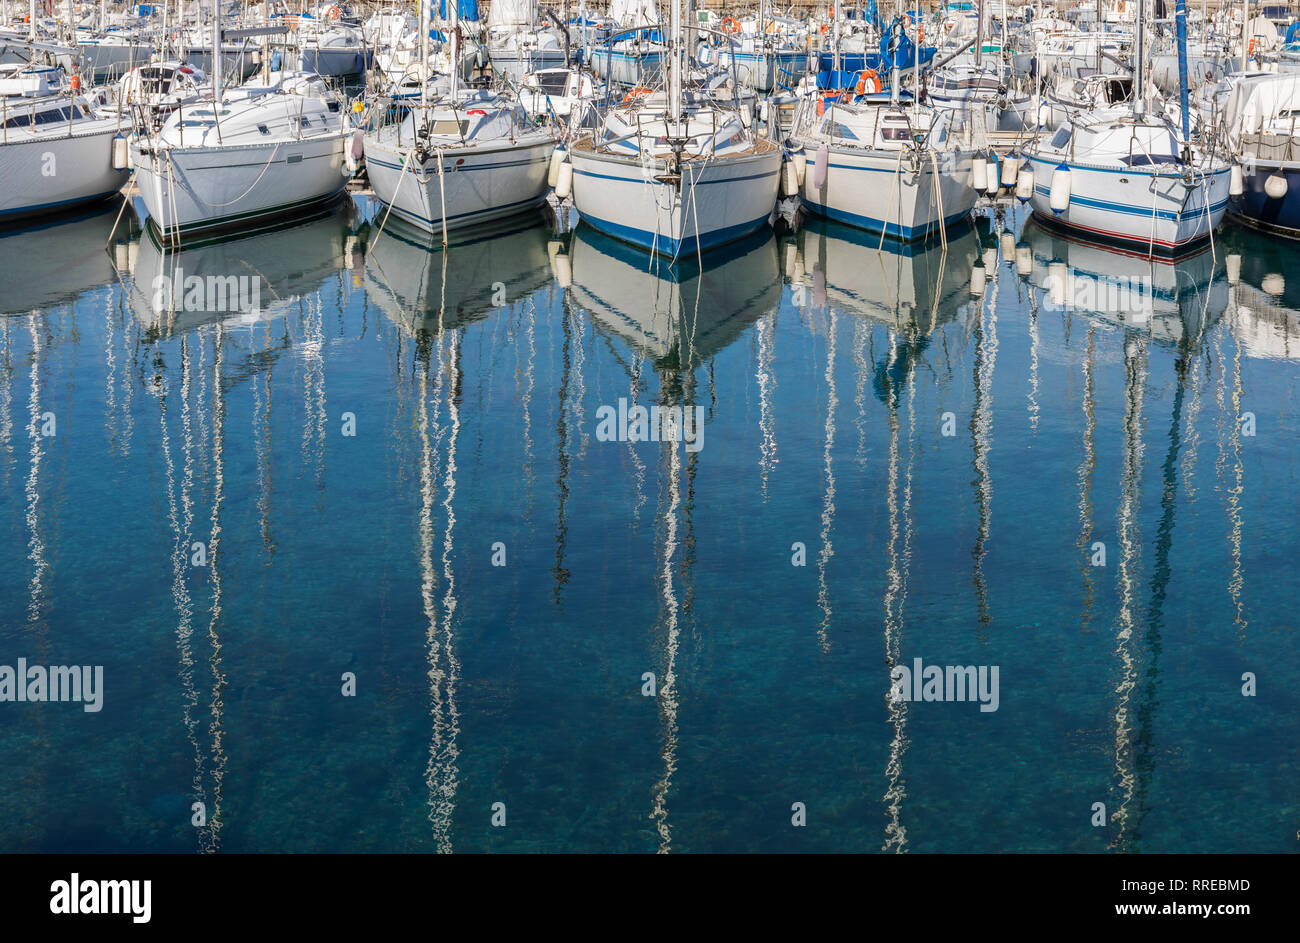 Sailing boats reflecting in the water - Stock Image